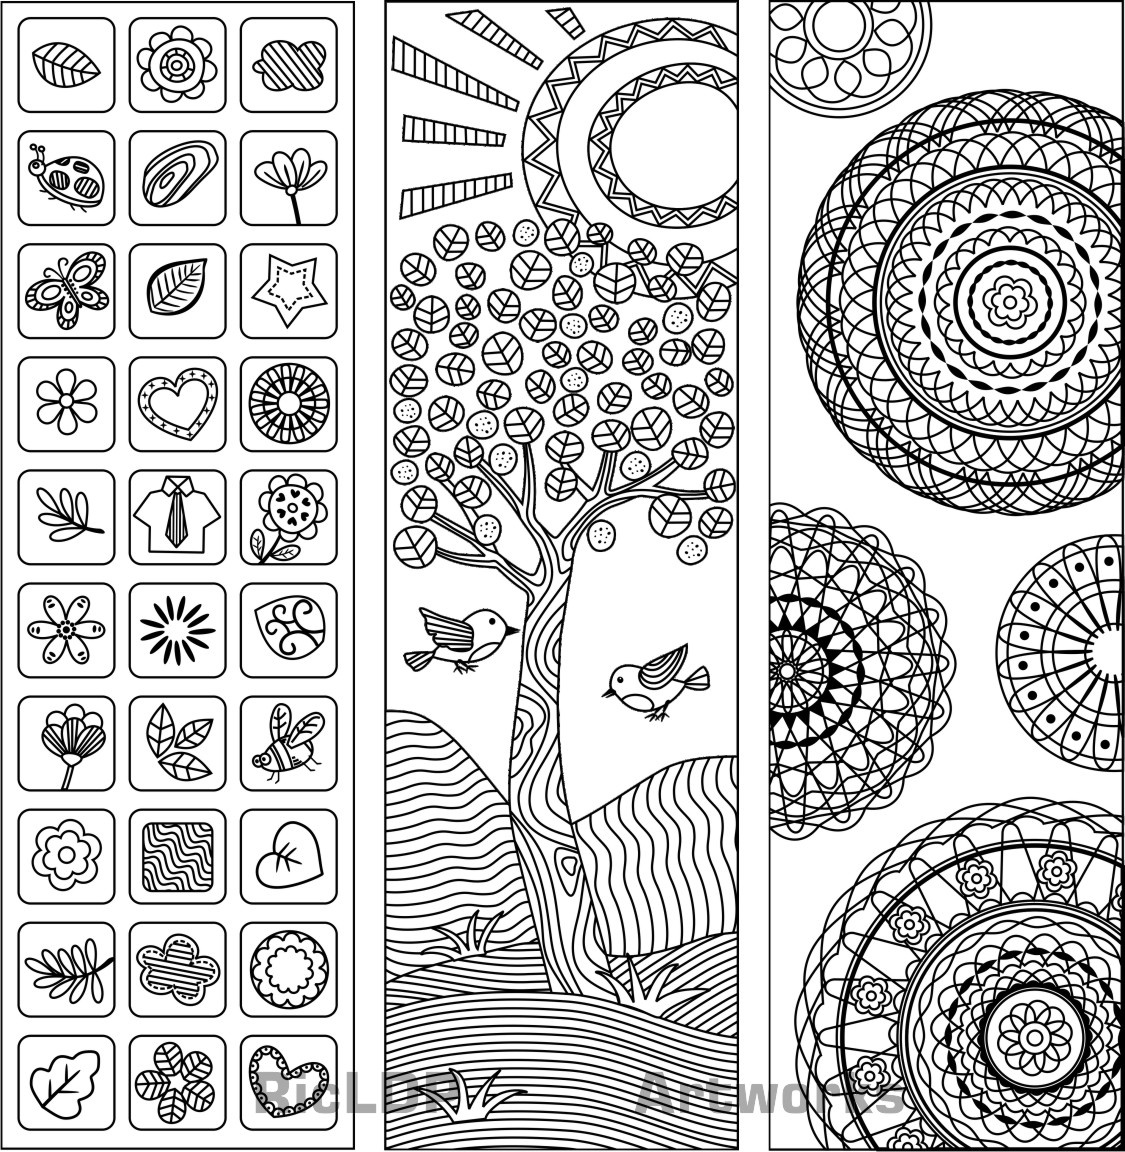 graphic relating to Free Printable Coloring Bookmarks named 3 Coloring Bookmarks - RicLDP Artworks